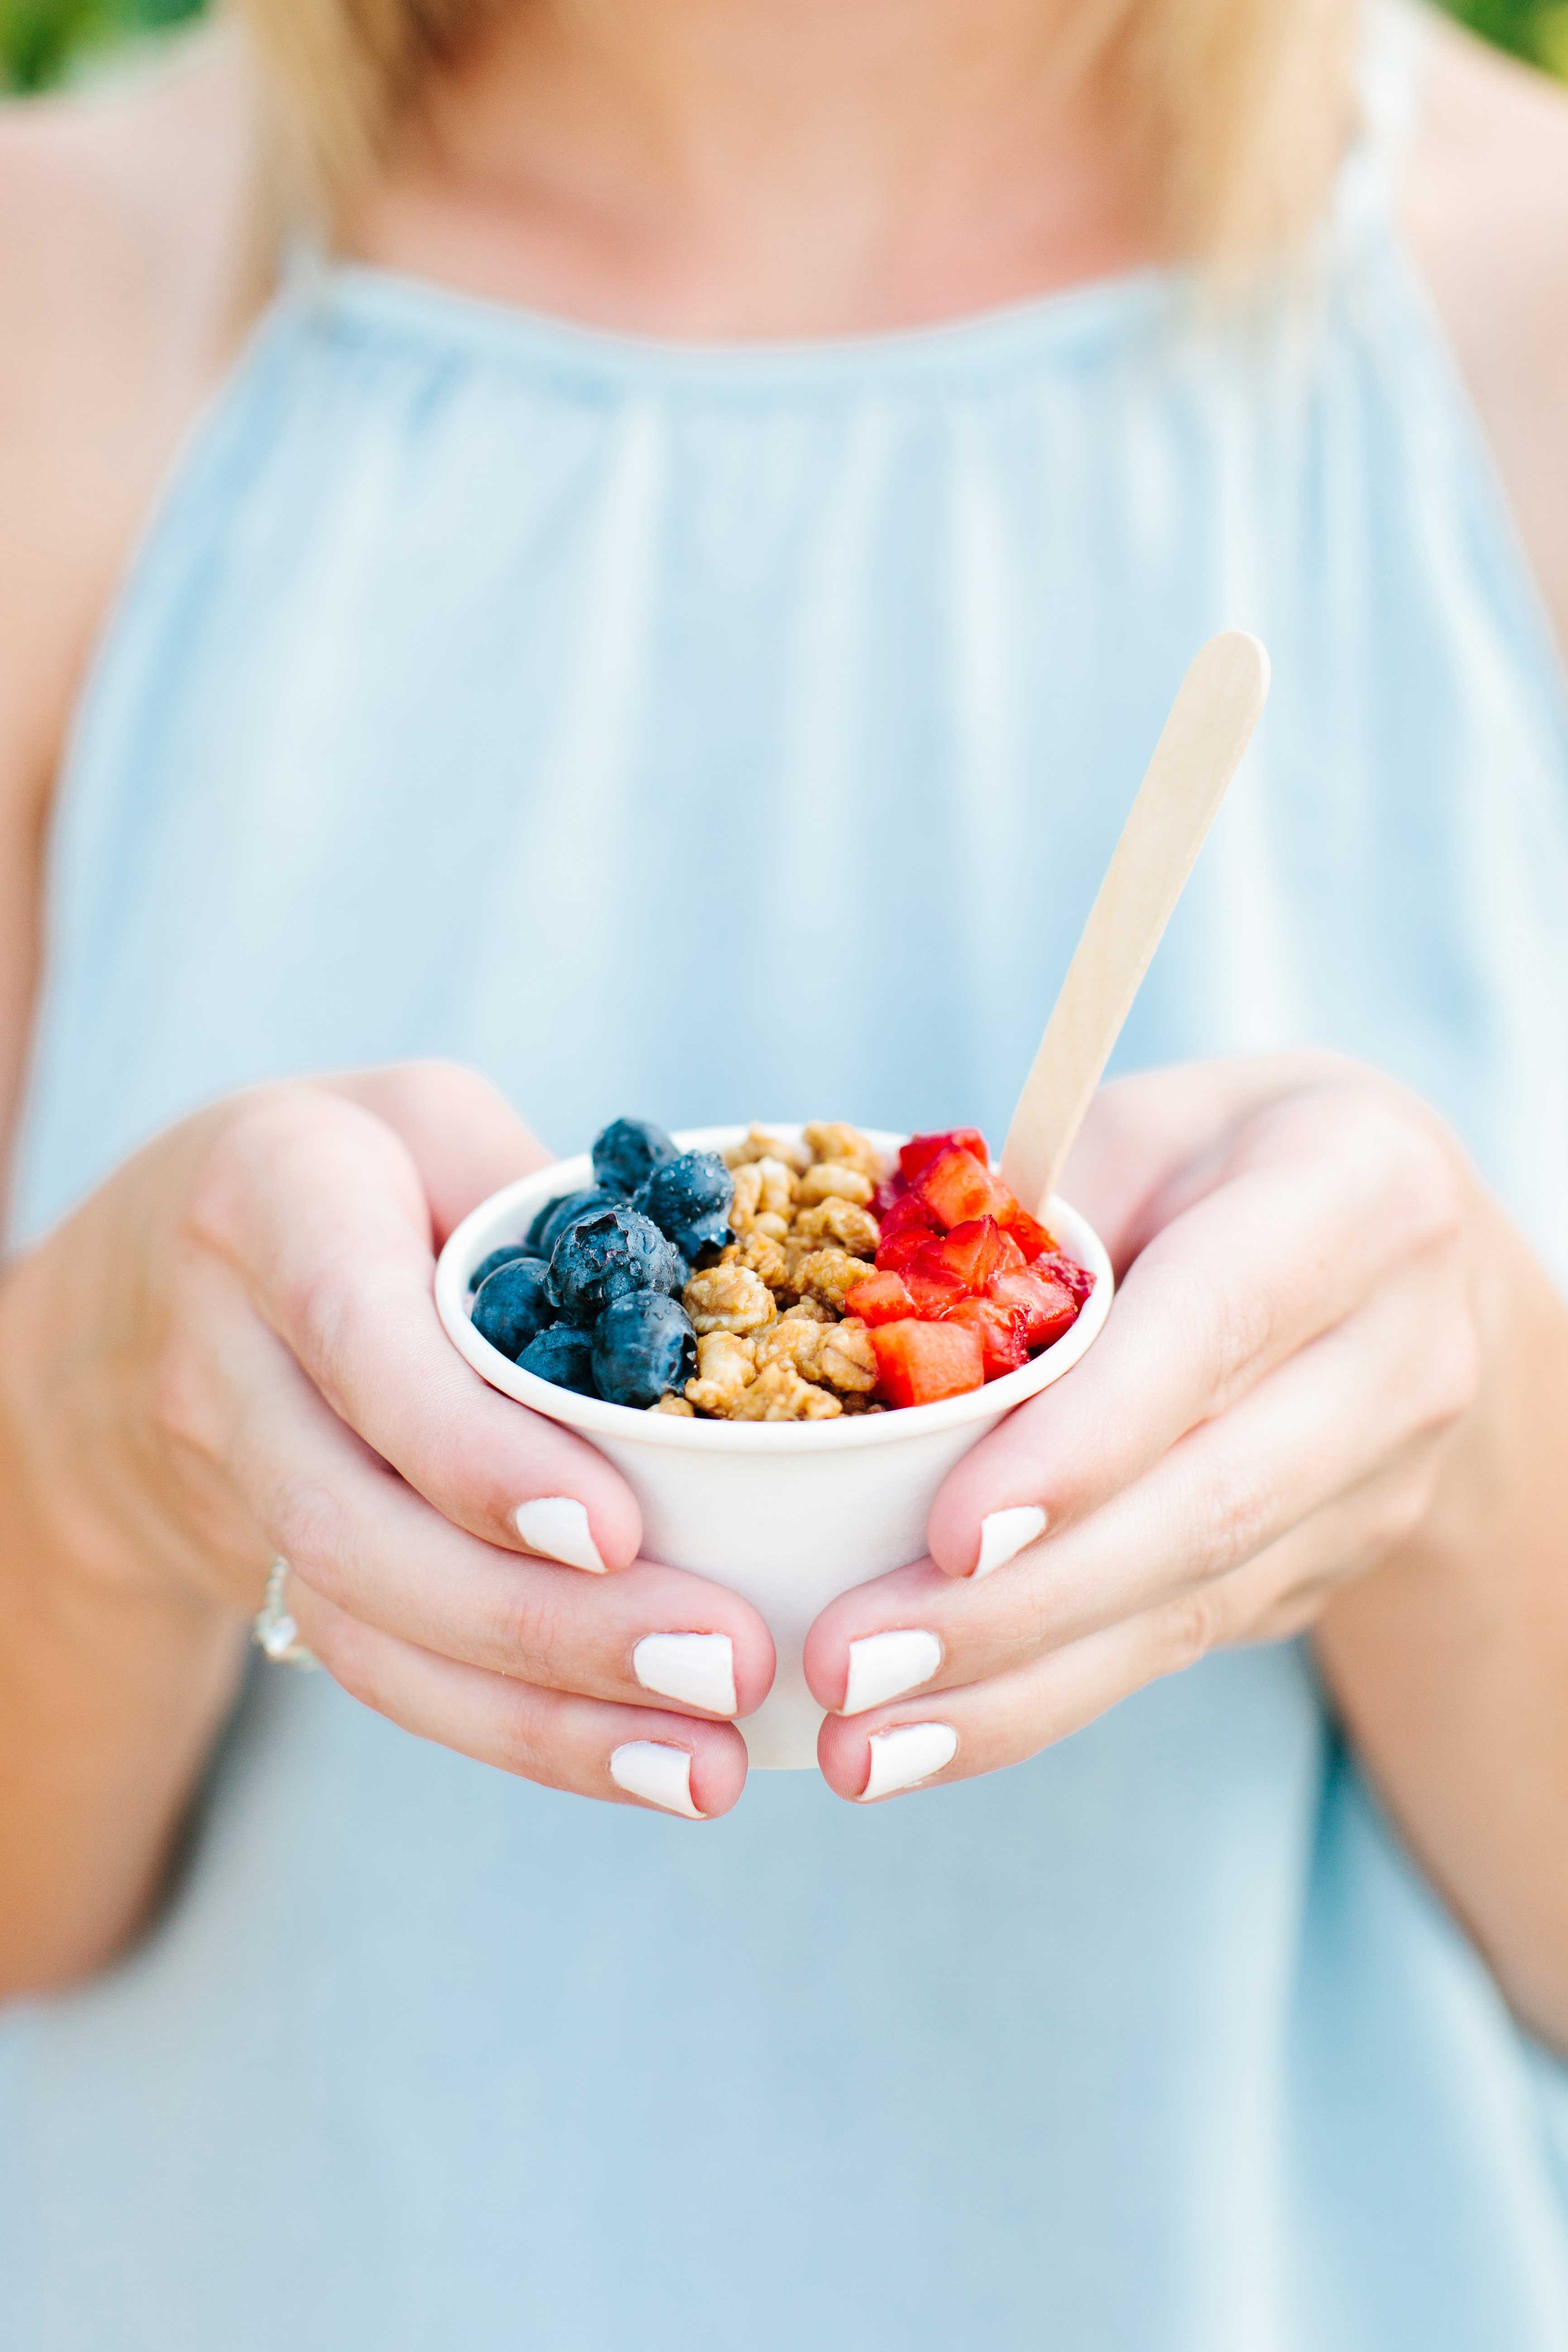 Woman in light blue dress and white manicure holding mini smoothie bowl cups